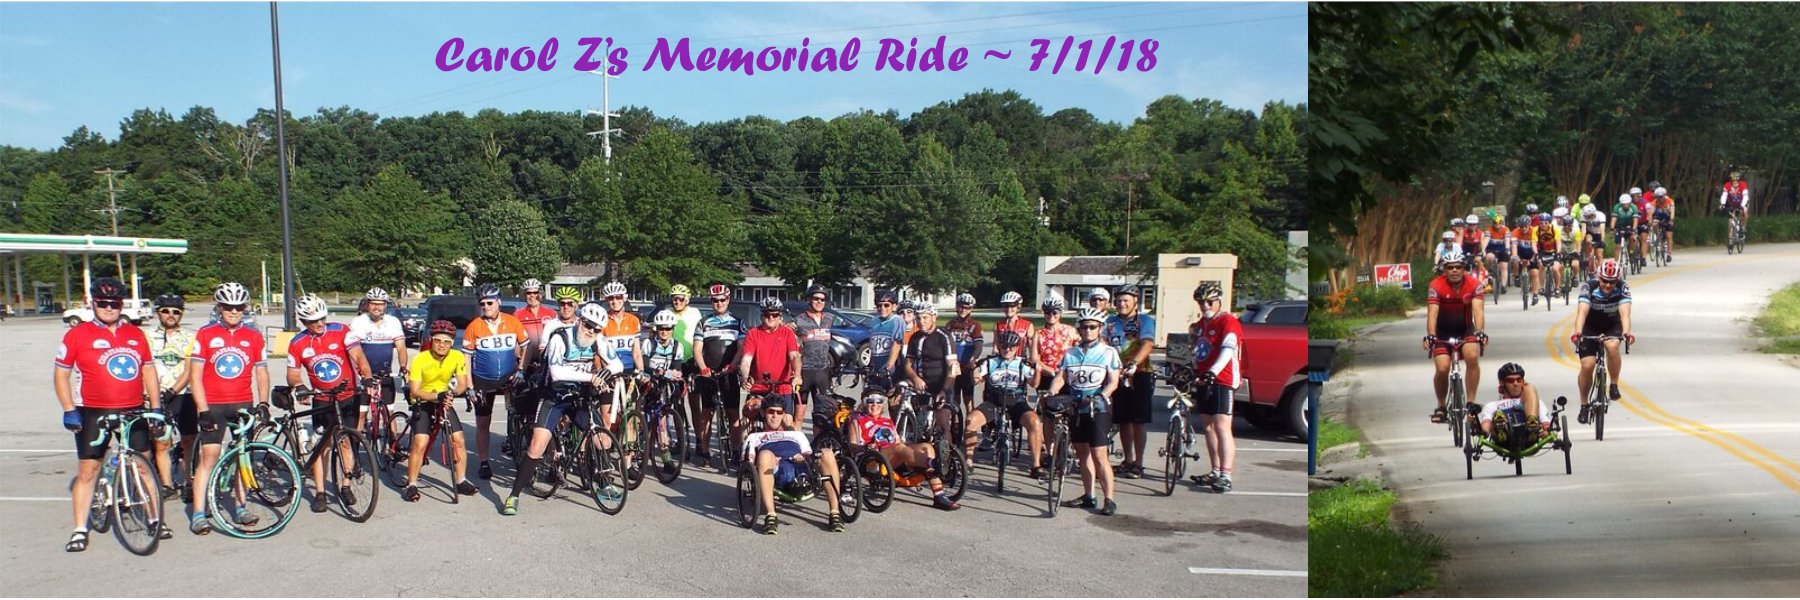 Slider for CBC home page – Carol Z Memorial Ride